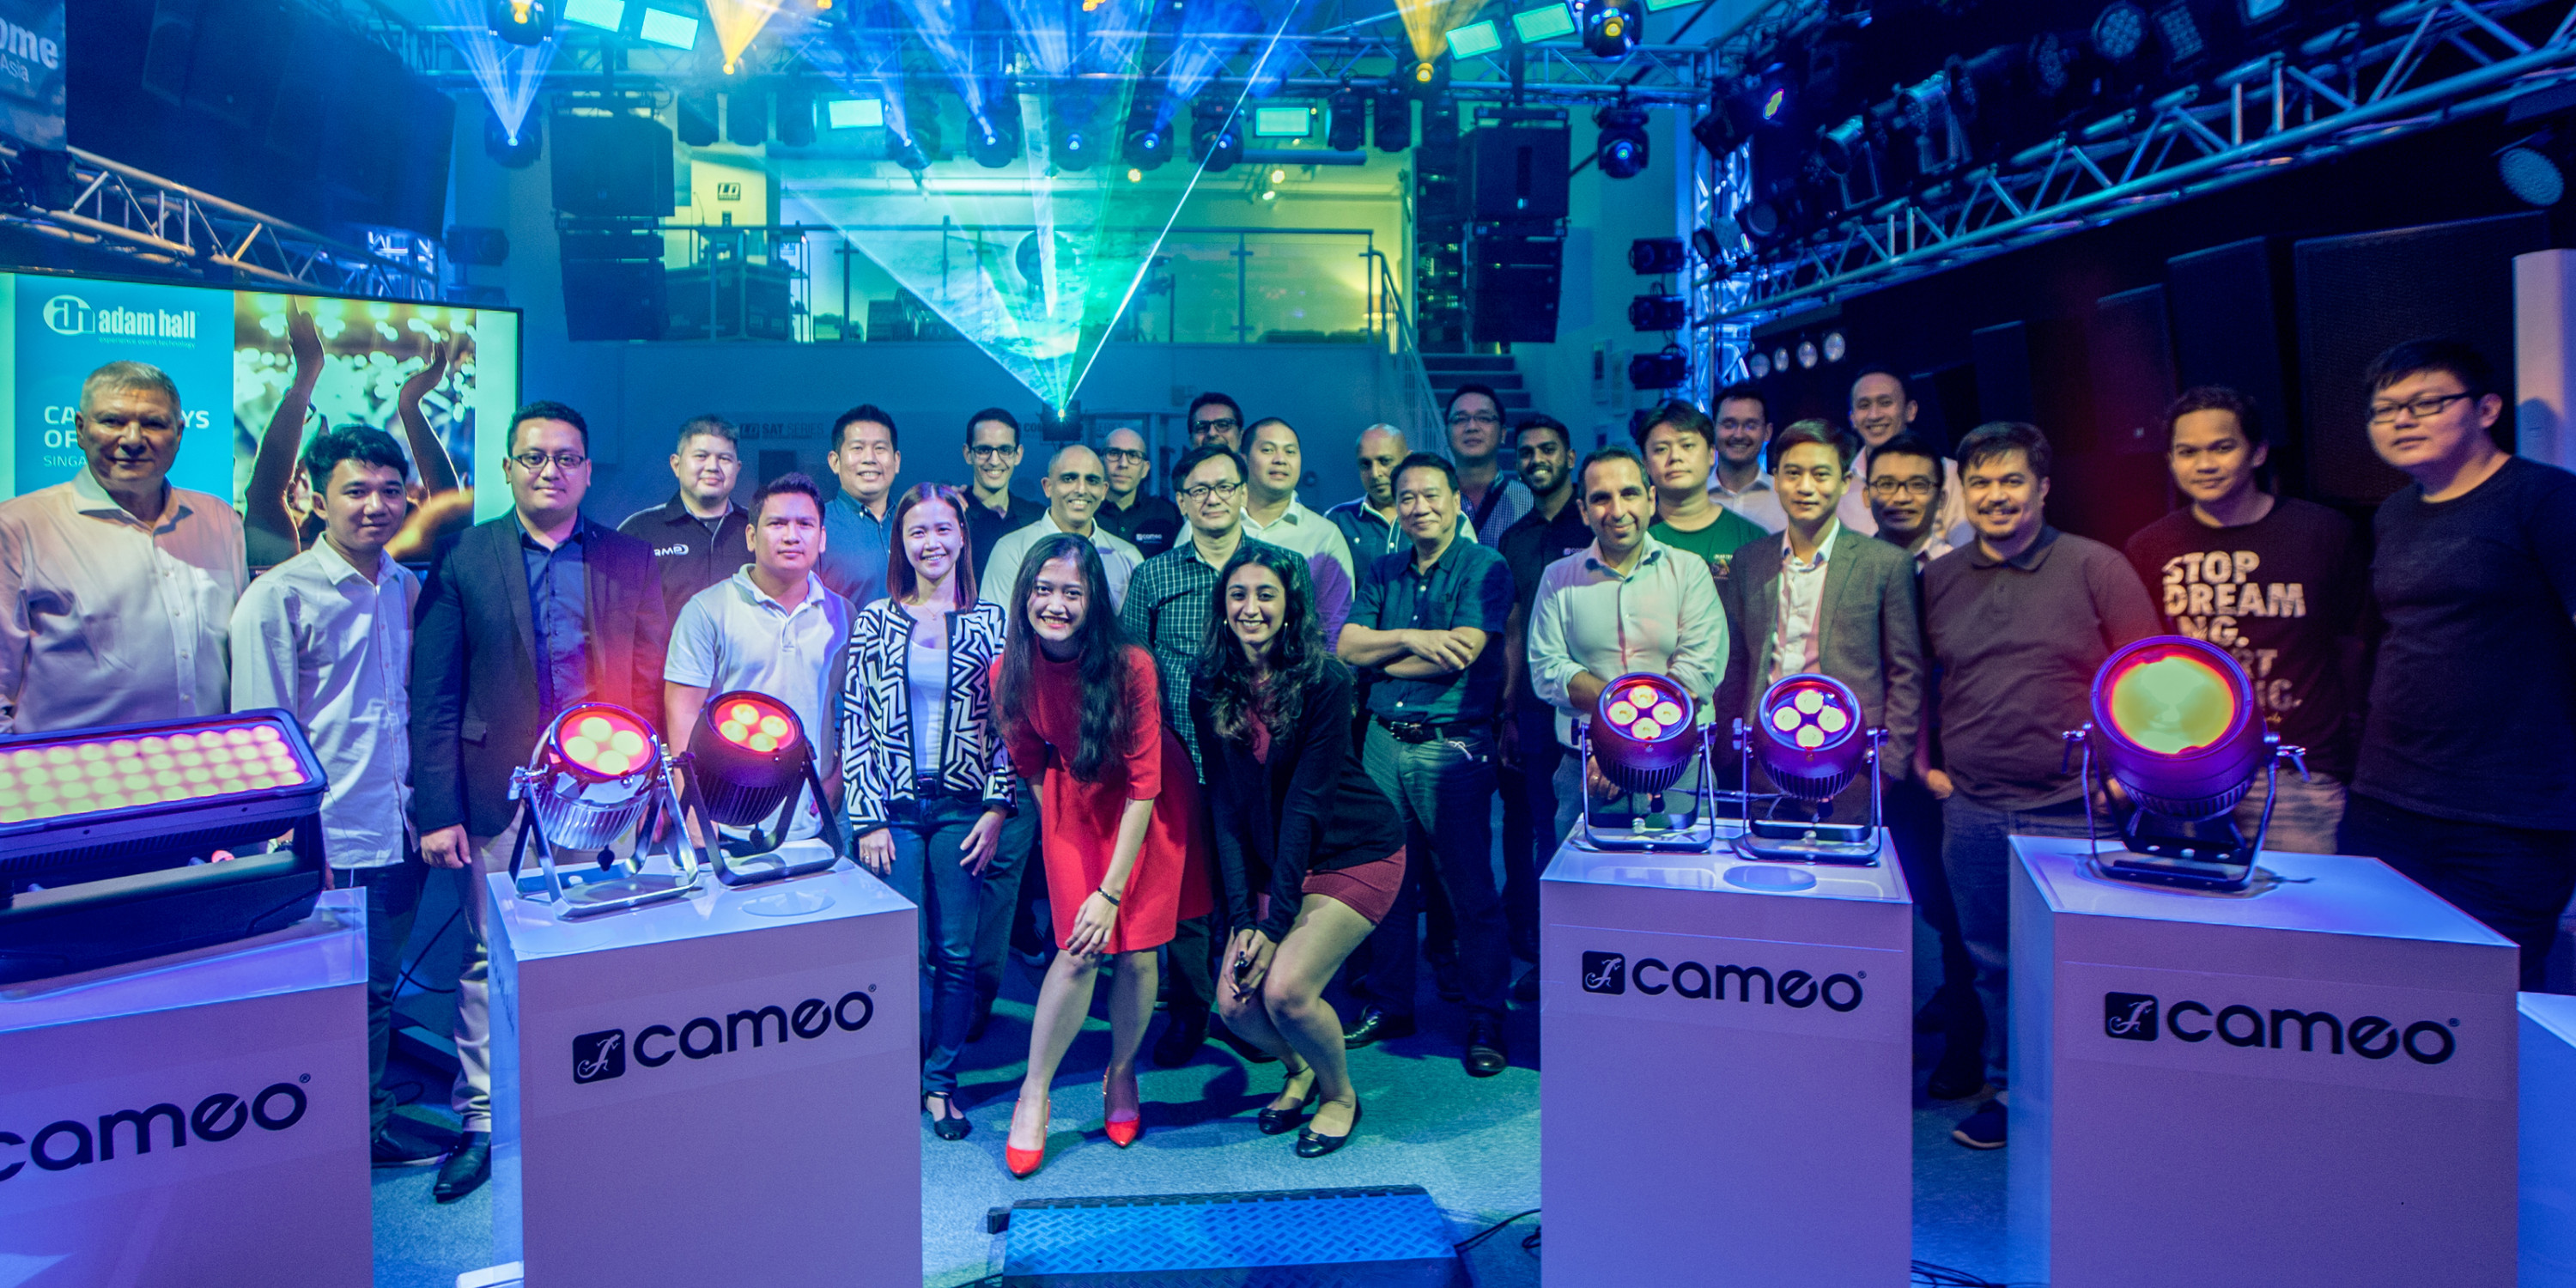 Cameo Day of Light in Singapore Showroom a Resounding Success